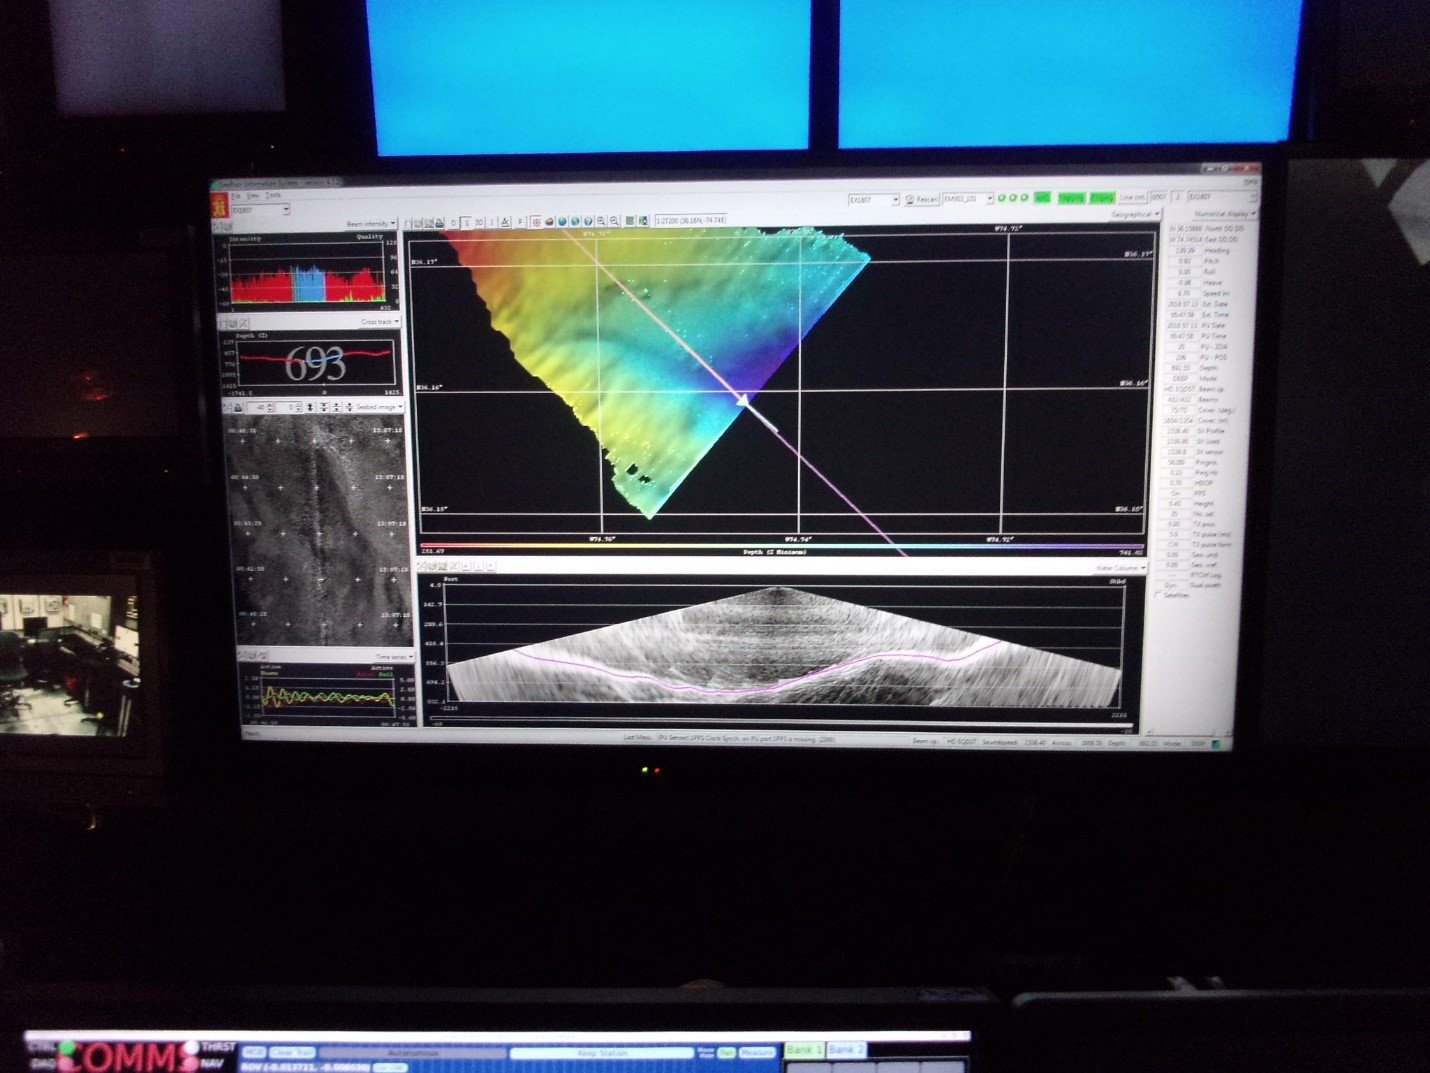 Multibeam sonar data